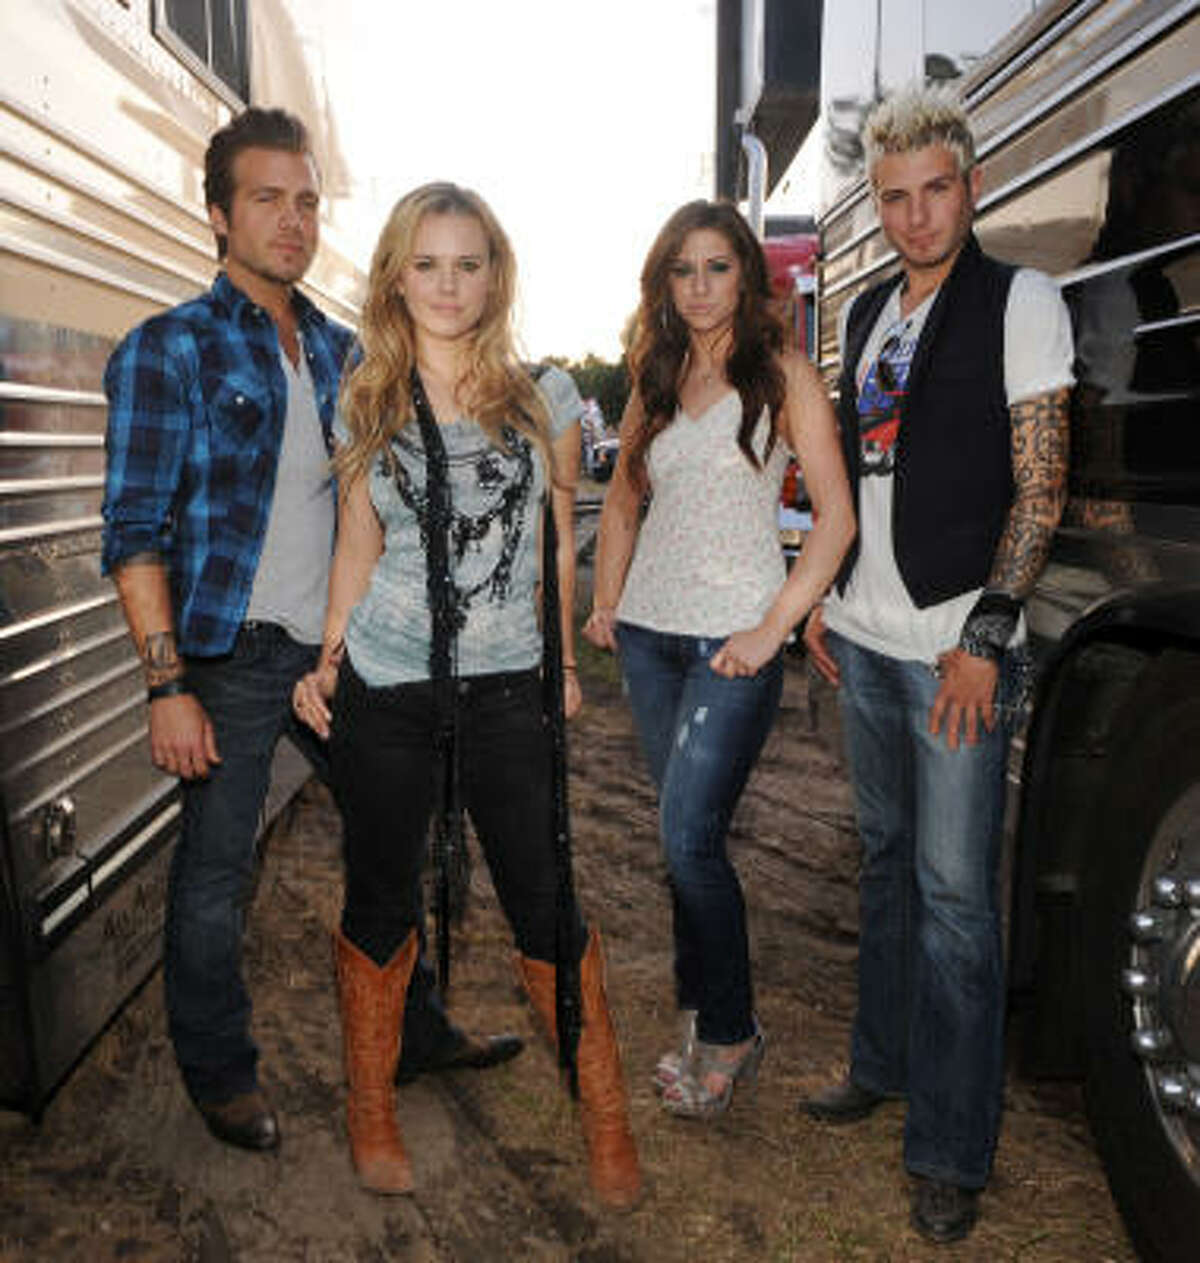 Dallas' Cheyenne Kimball, left, and Rachel Reinert help Gloriana move up the country charts. Read more about Gloriana here.